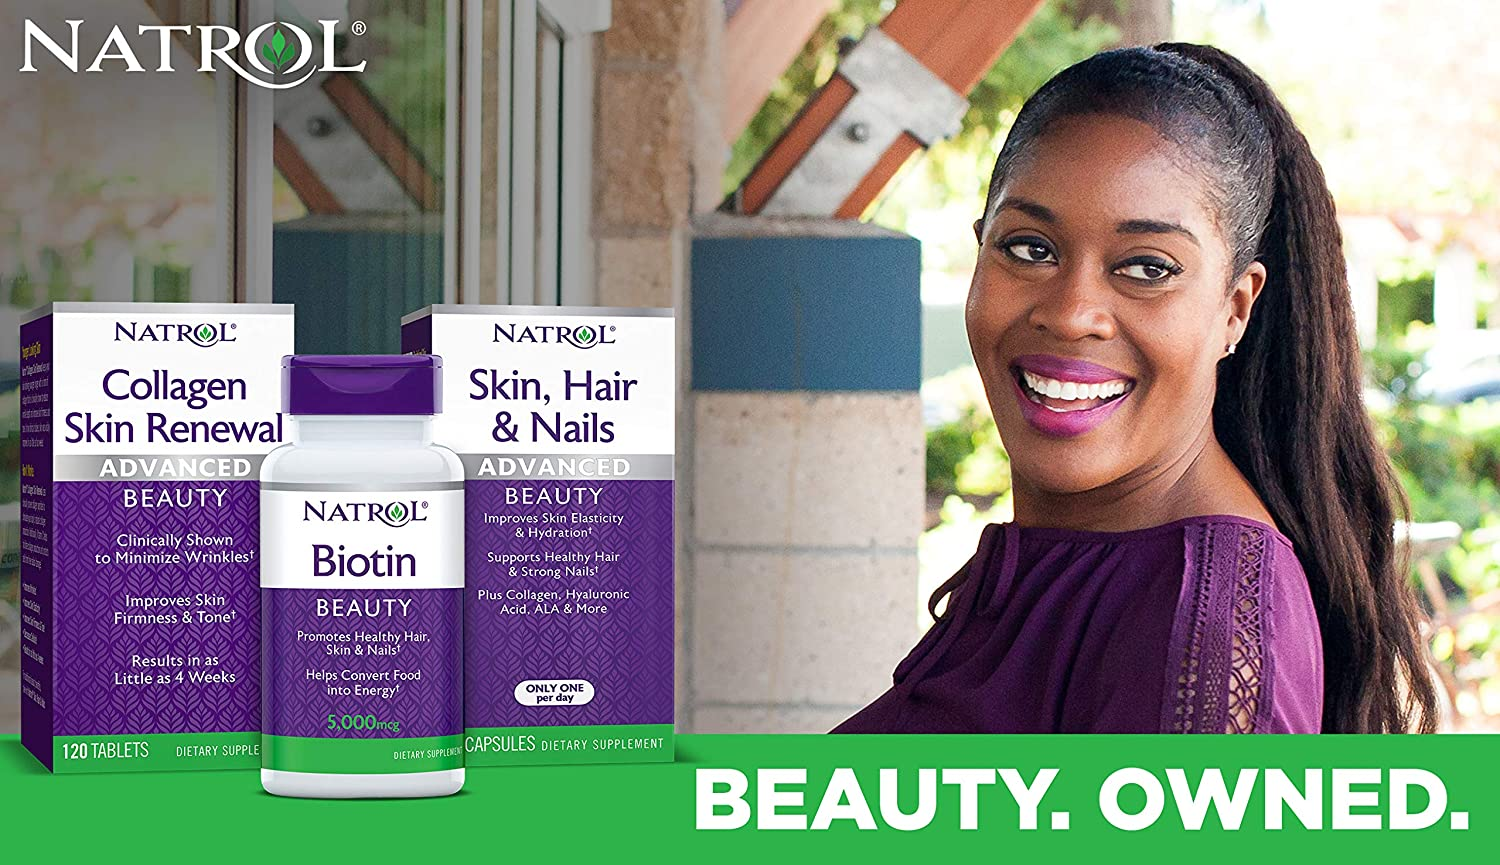 Natrol Biotin Beauty Tablets Promotes Healthy Hair Skin Nails Helps Support Energy Metabolism Helps Convert Food Into Energy 10 000mcg 60count